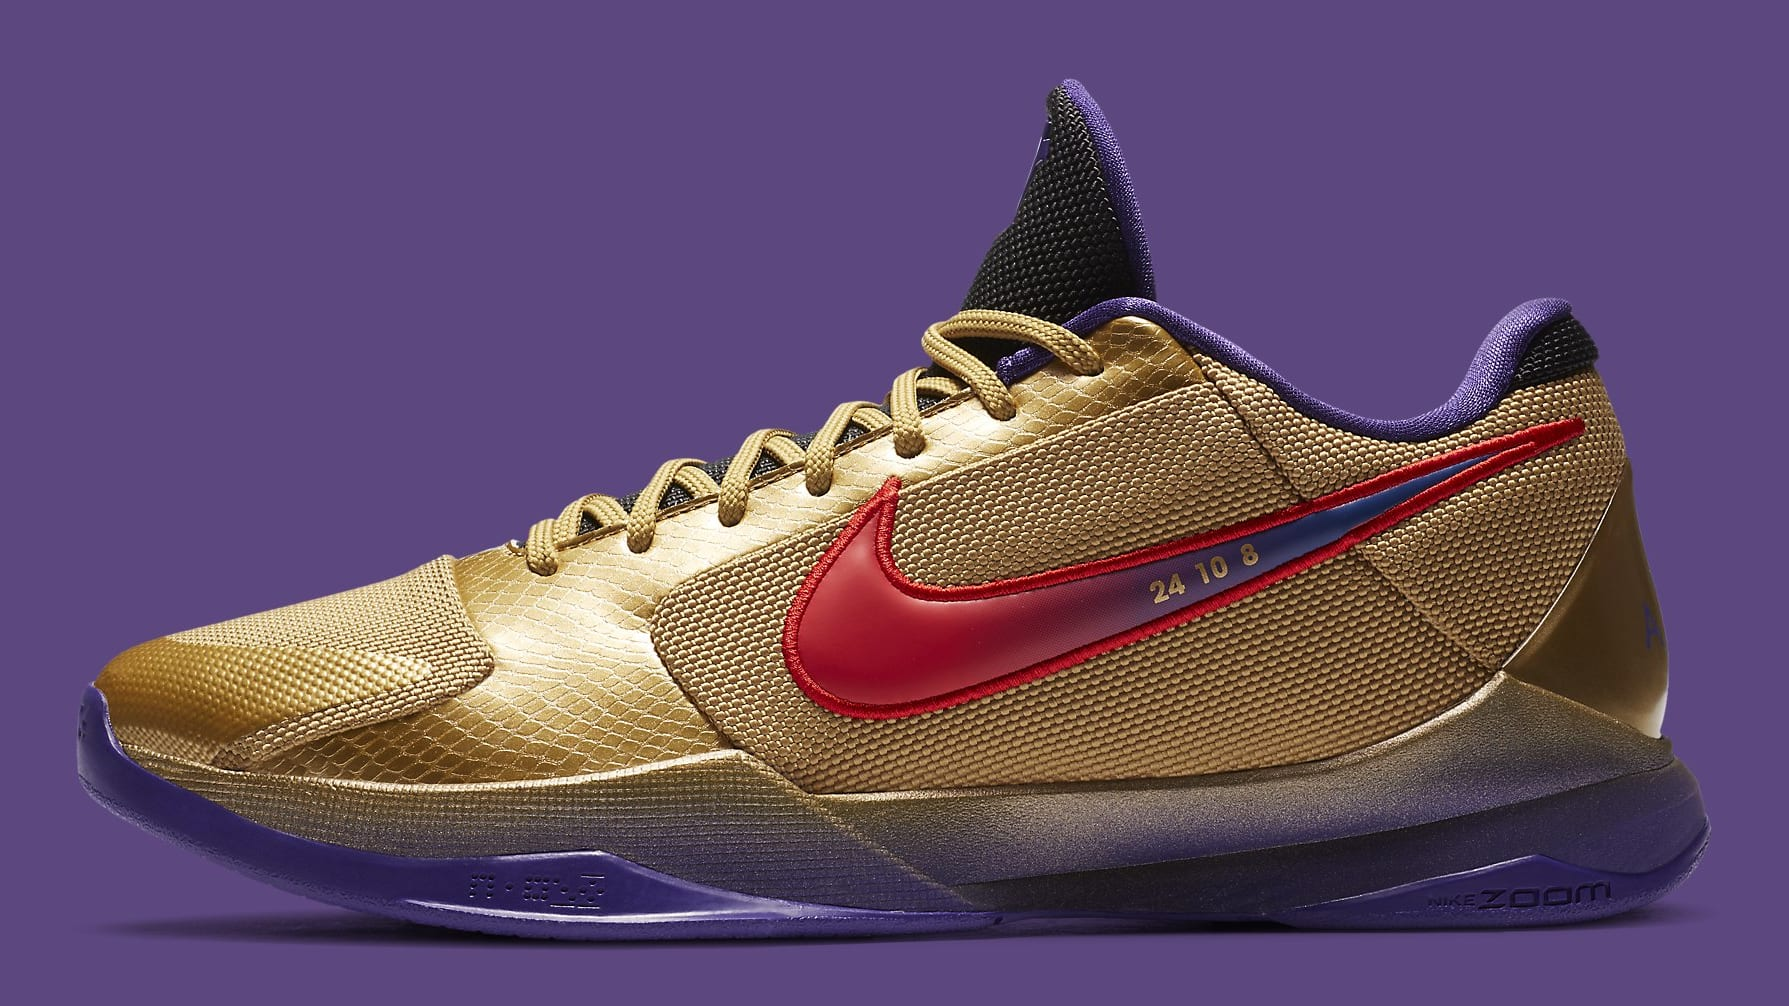 Undefeated x Nike Kobe 5 Gold Hall of Fame Release date DA6809-700 Profile